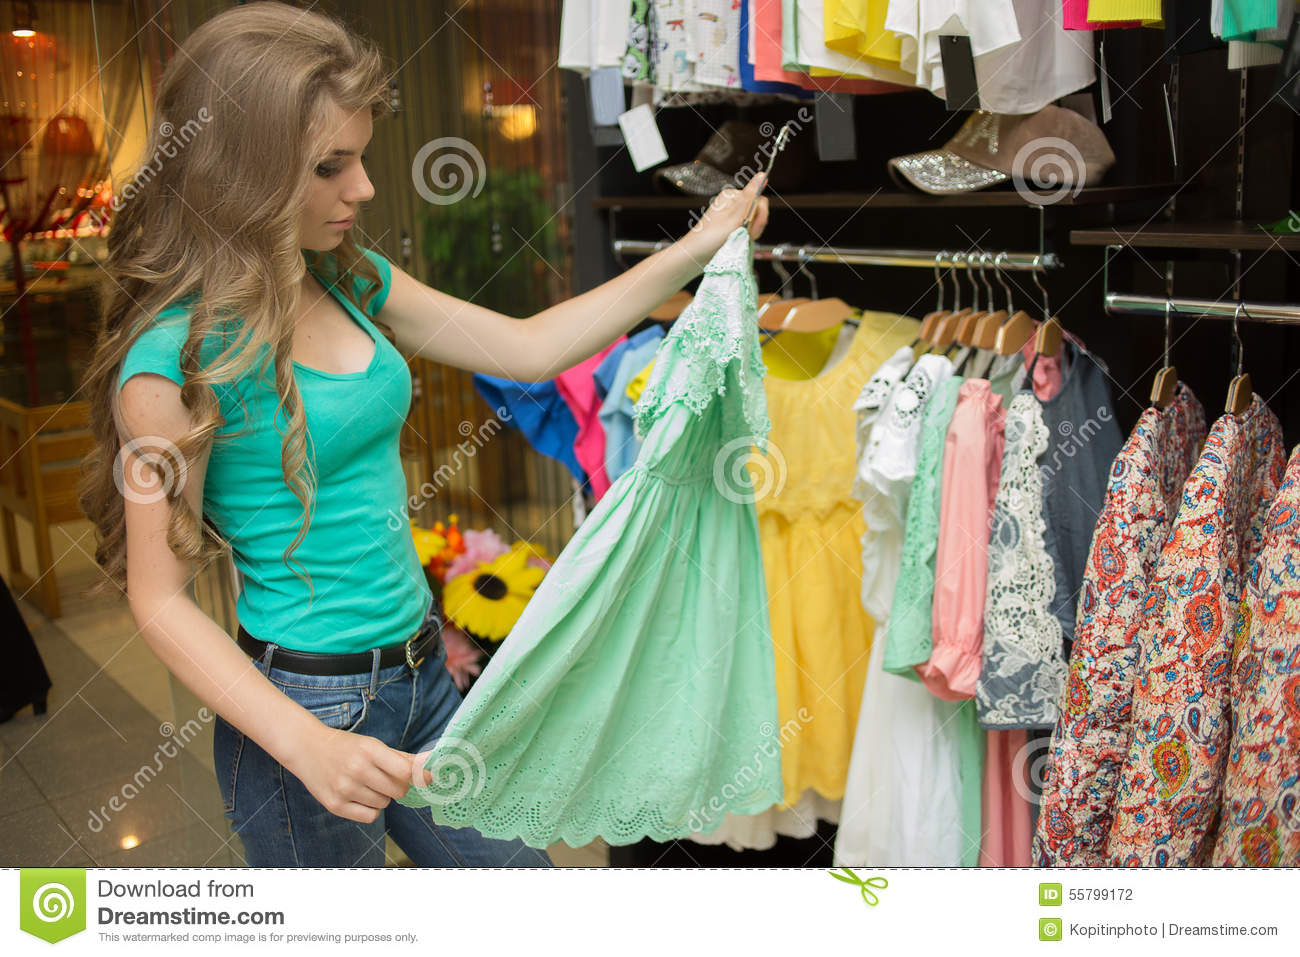 Elegant woman choosing dress in retail store